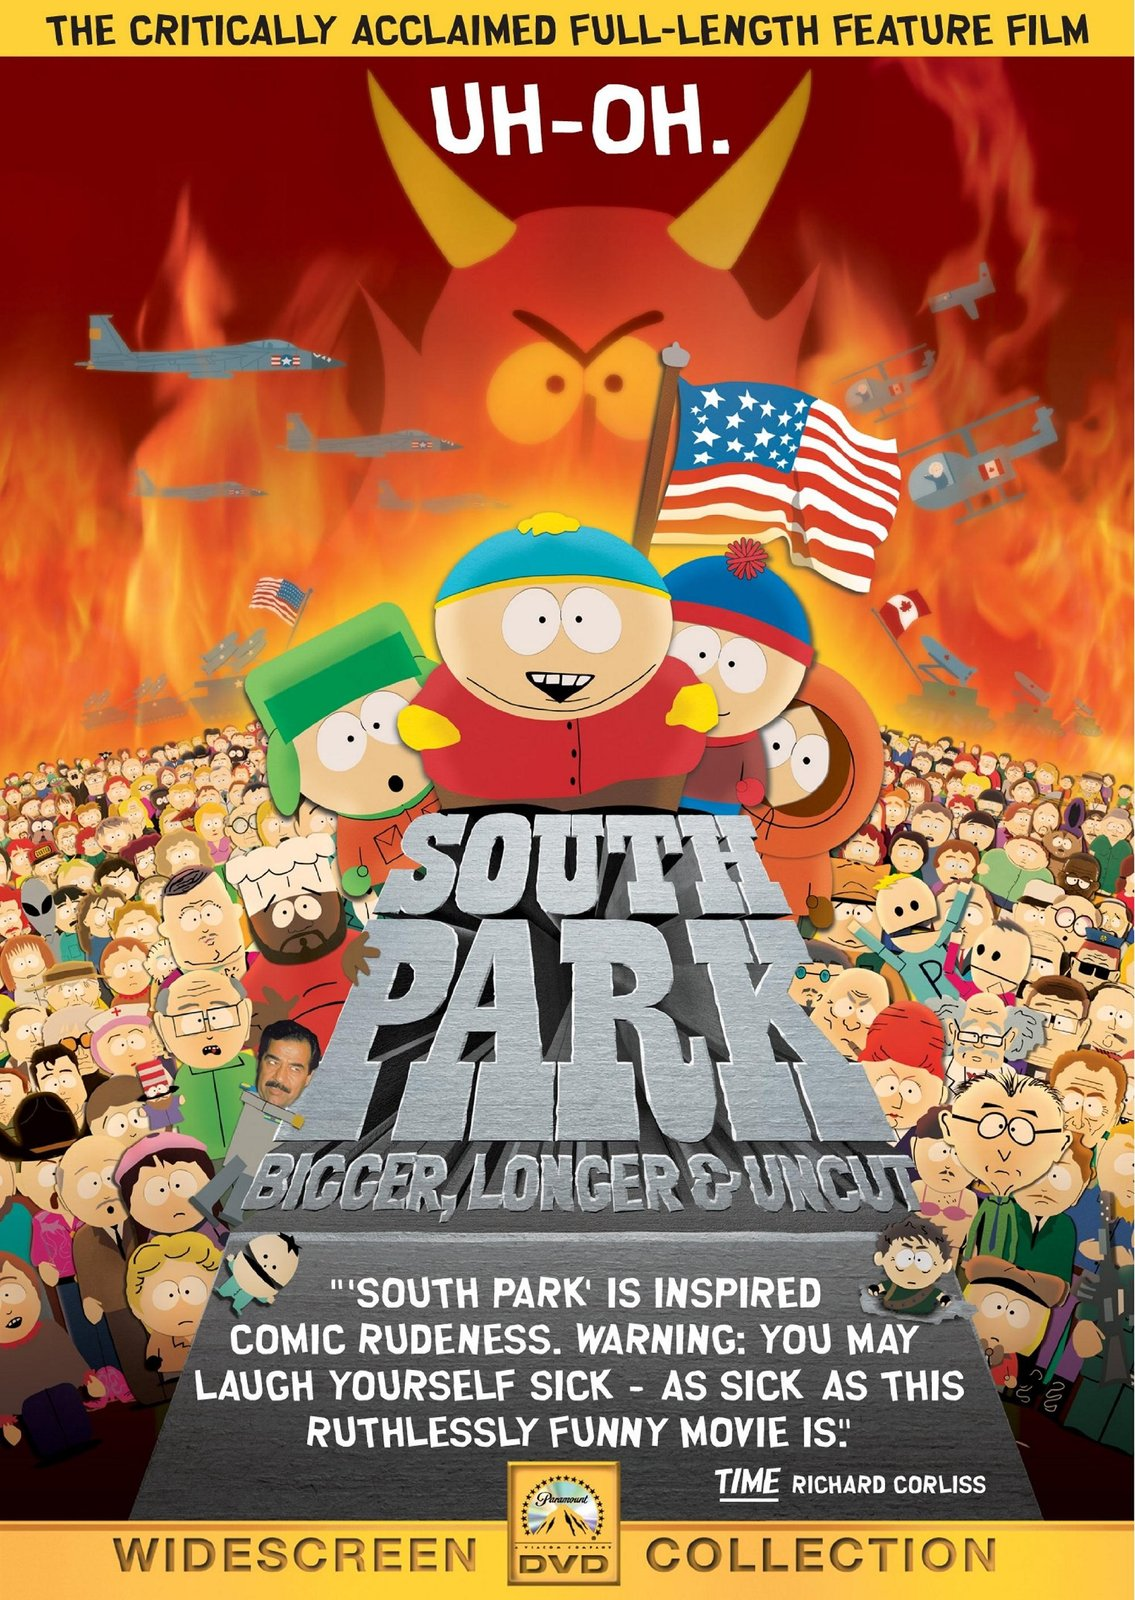 South Park: Bigger Longer & Uncut Dvd